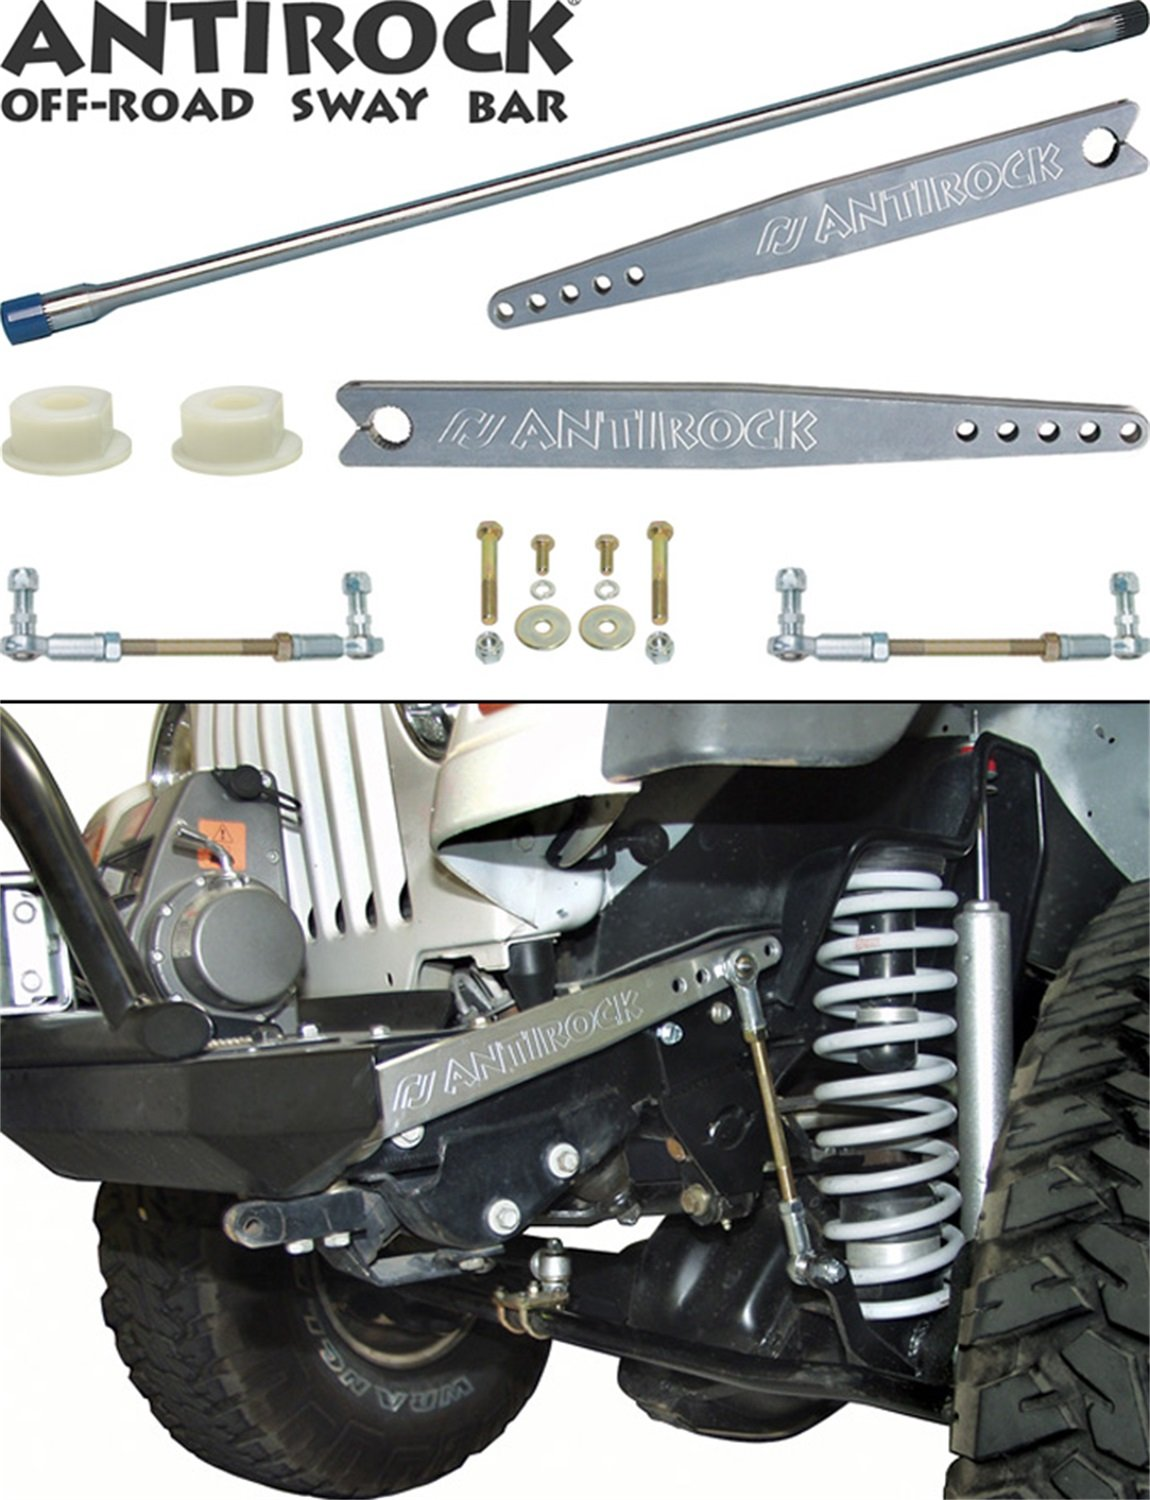 Currie Enterprises CE-9900A ANTIROCK Front Sway Bar Kit with Aluminum Arm (Option For '97-'06 TJ And Unlimited) by Currie (Image #1)